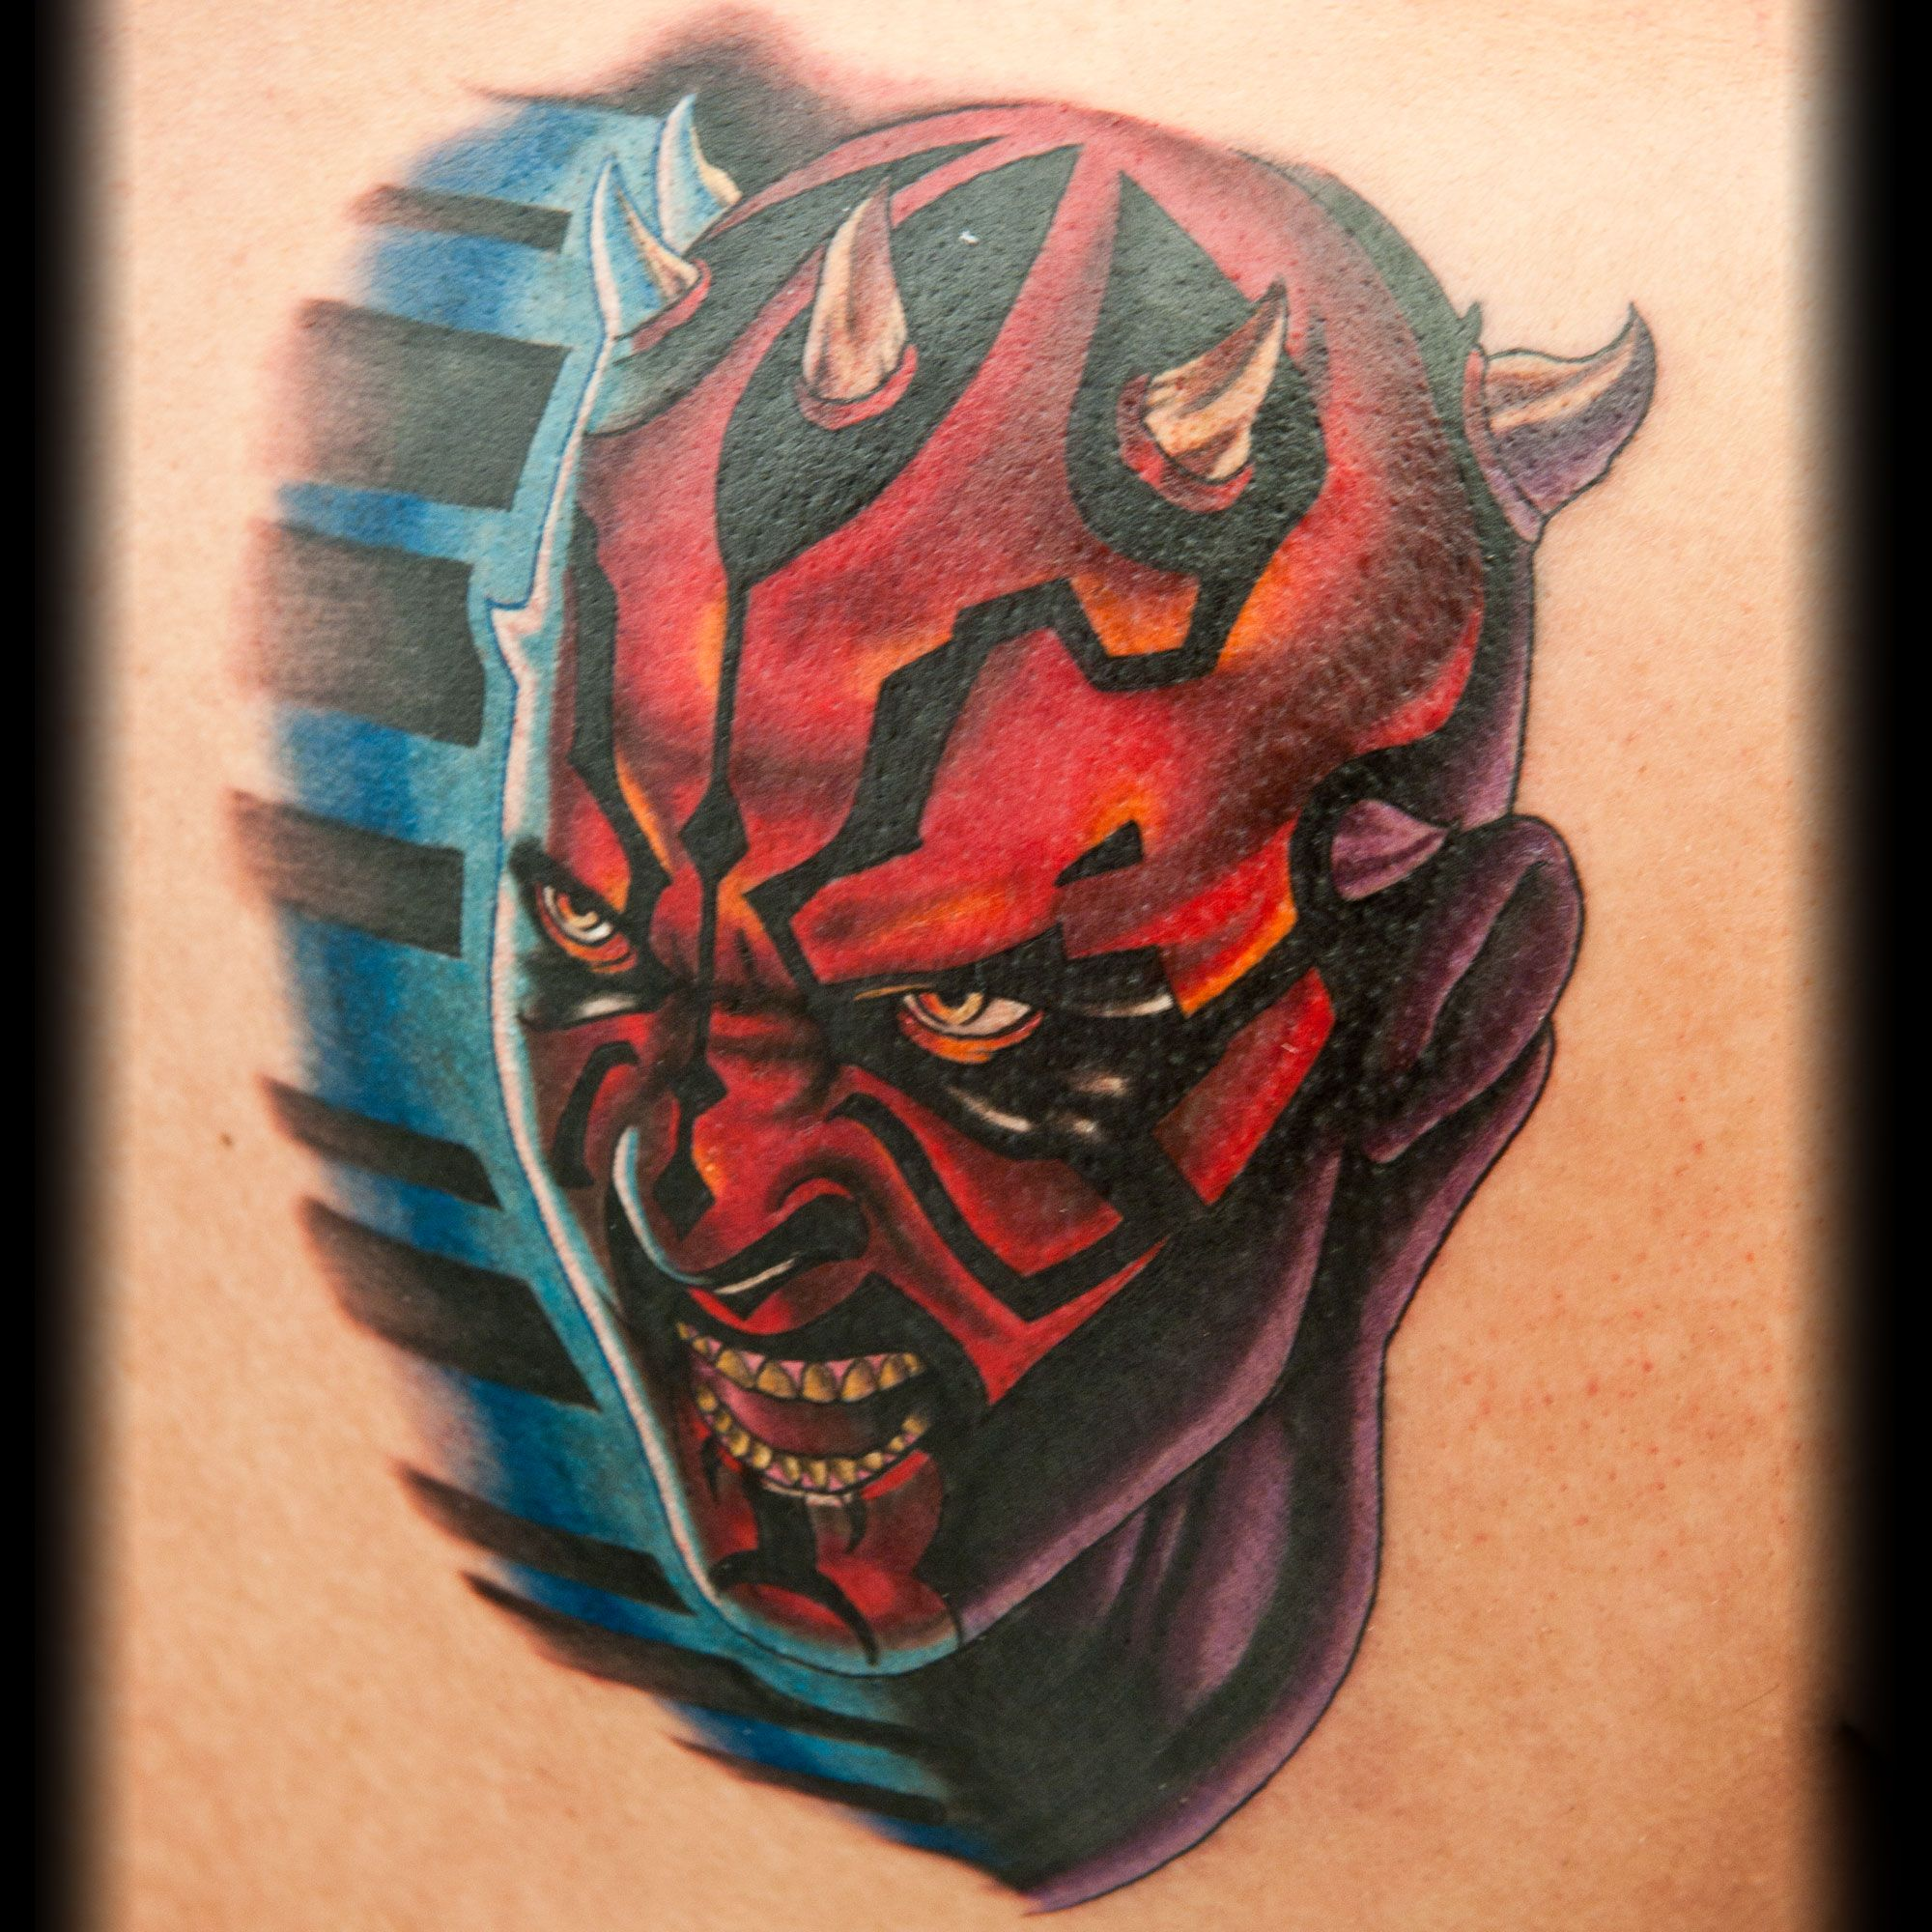 Bien-aimé Star Wars - Ink Master PH37